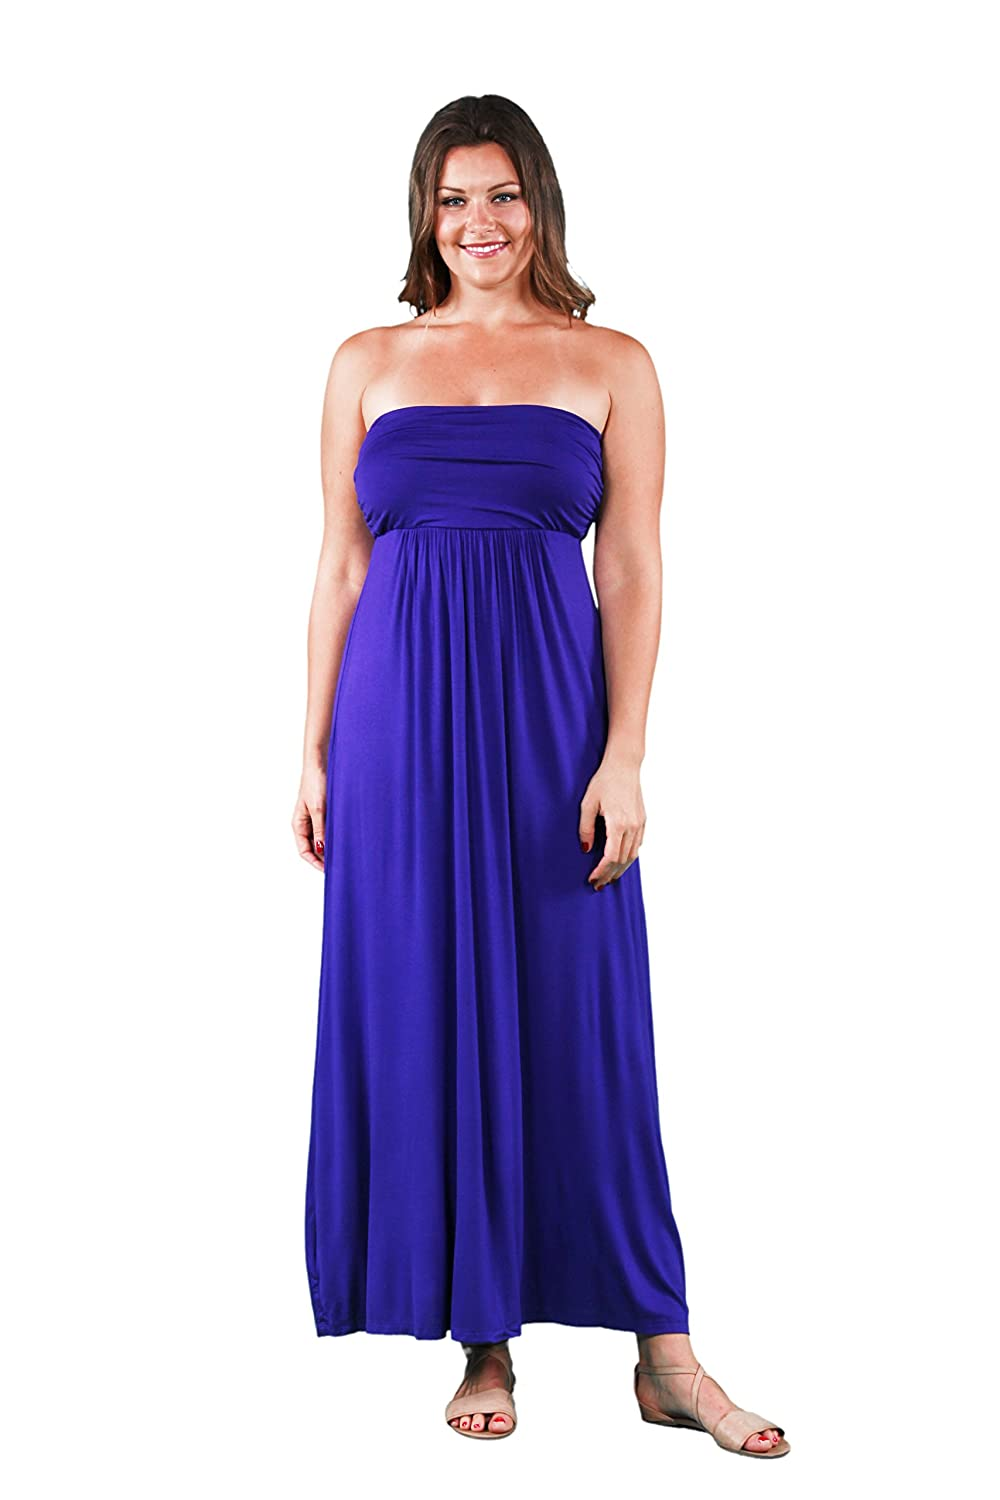 a52dffc1e9a Top1  24 7 Comfort Apparel Plus Size Dresses Strapless Maxi Tube Dress For  Womens -  Made in USA